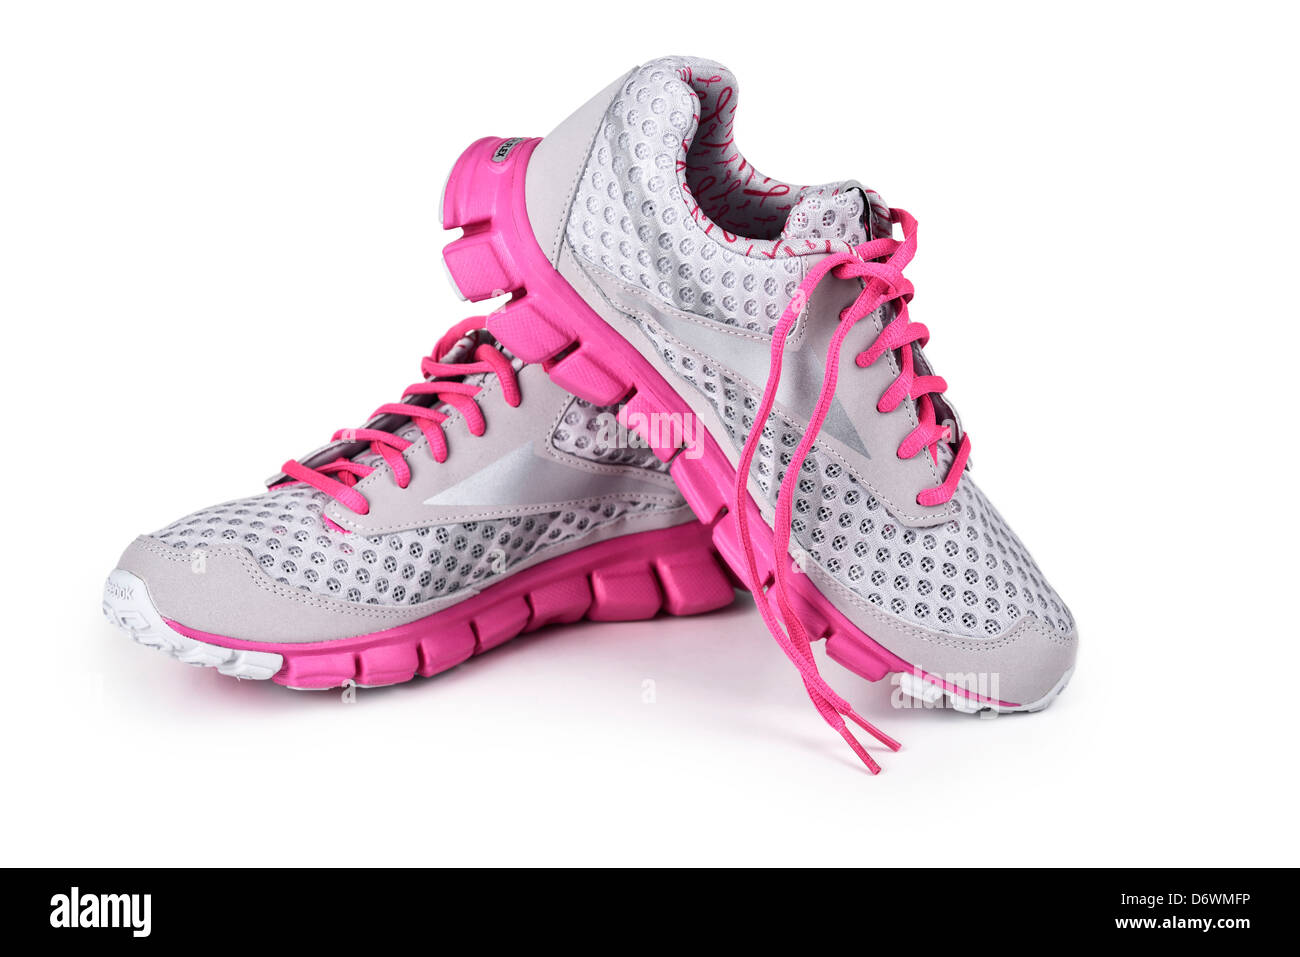 Sneakers, Trainers, Running Shoes - Stock Image